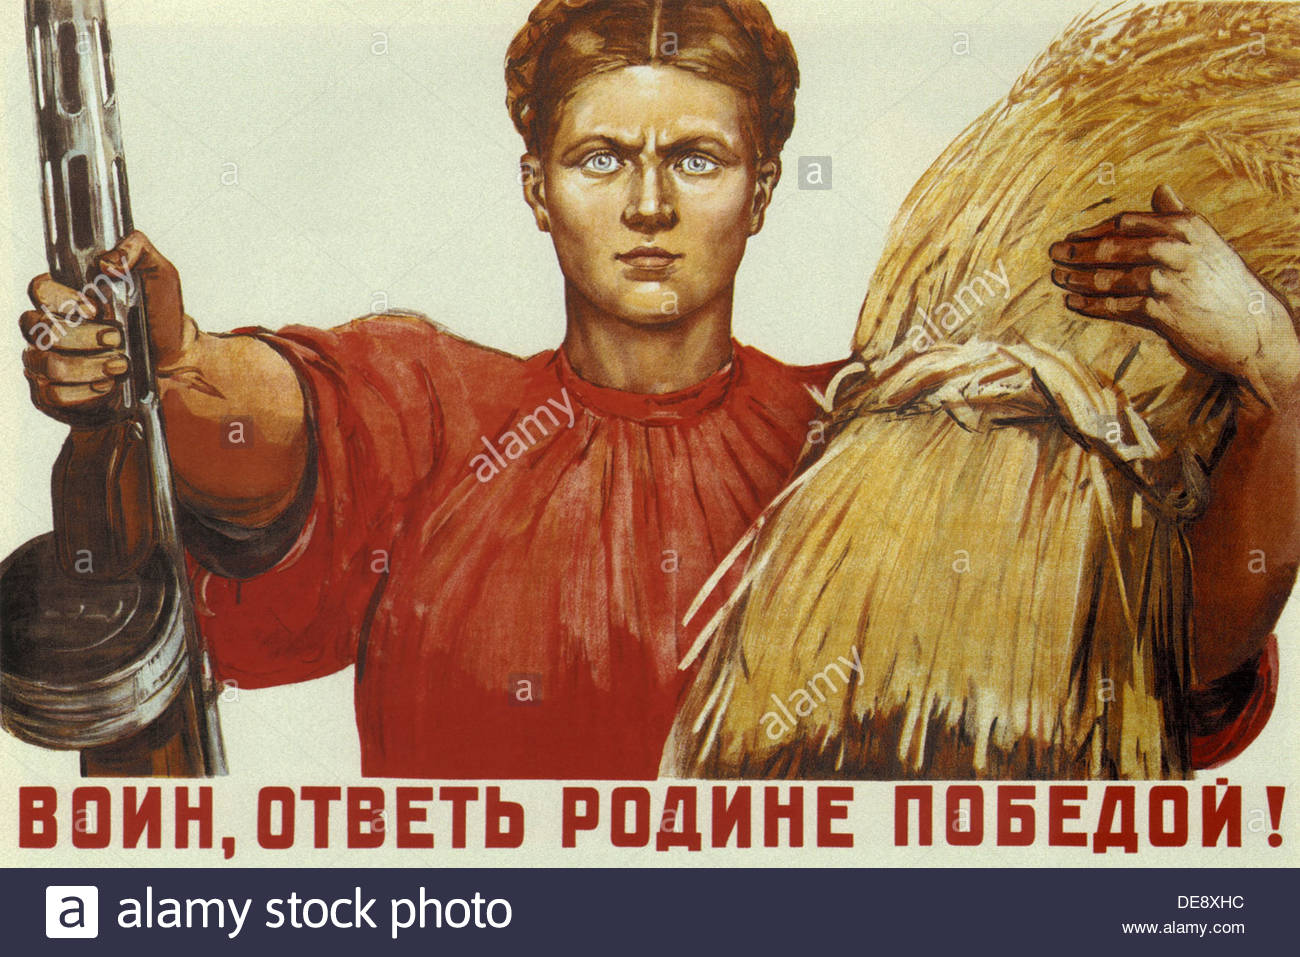 Warrior, answer the motherland with victory!, 1942. Artist: Shmarinov, Dementi Alexeevich (1907-1999) - Stock Image